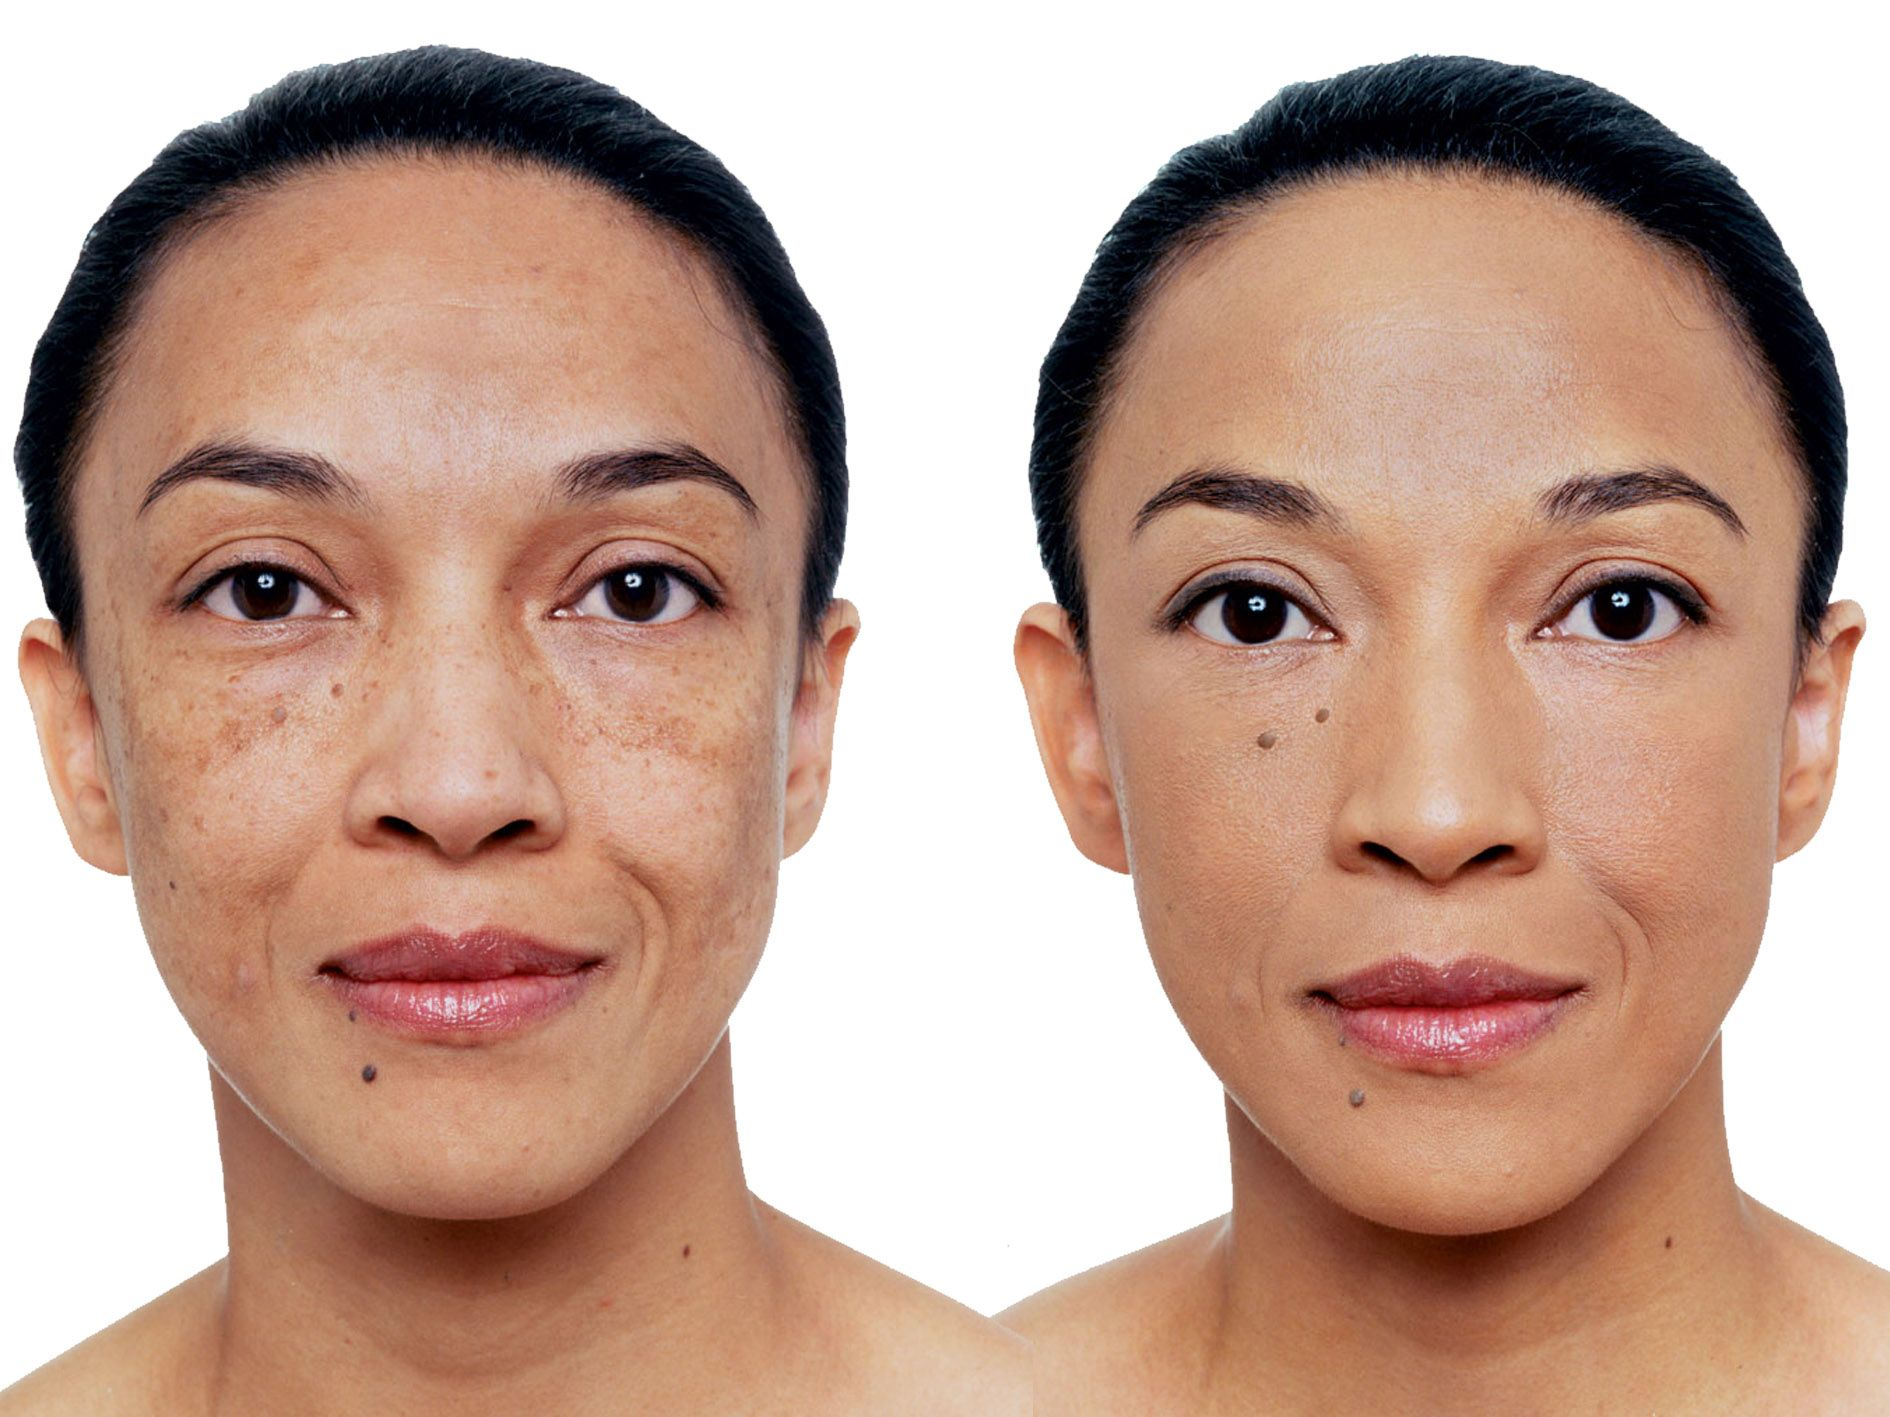 Vichy S Dermablend Camouflage Foundation Darren Kennedy S Helpmystyle Ie Fashion Style Life Dermablend Vichy Black Skin